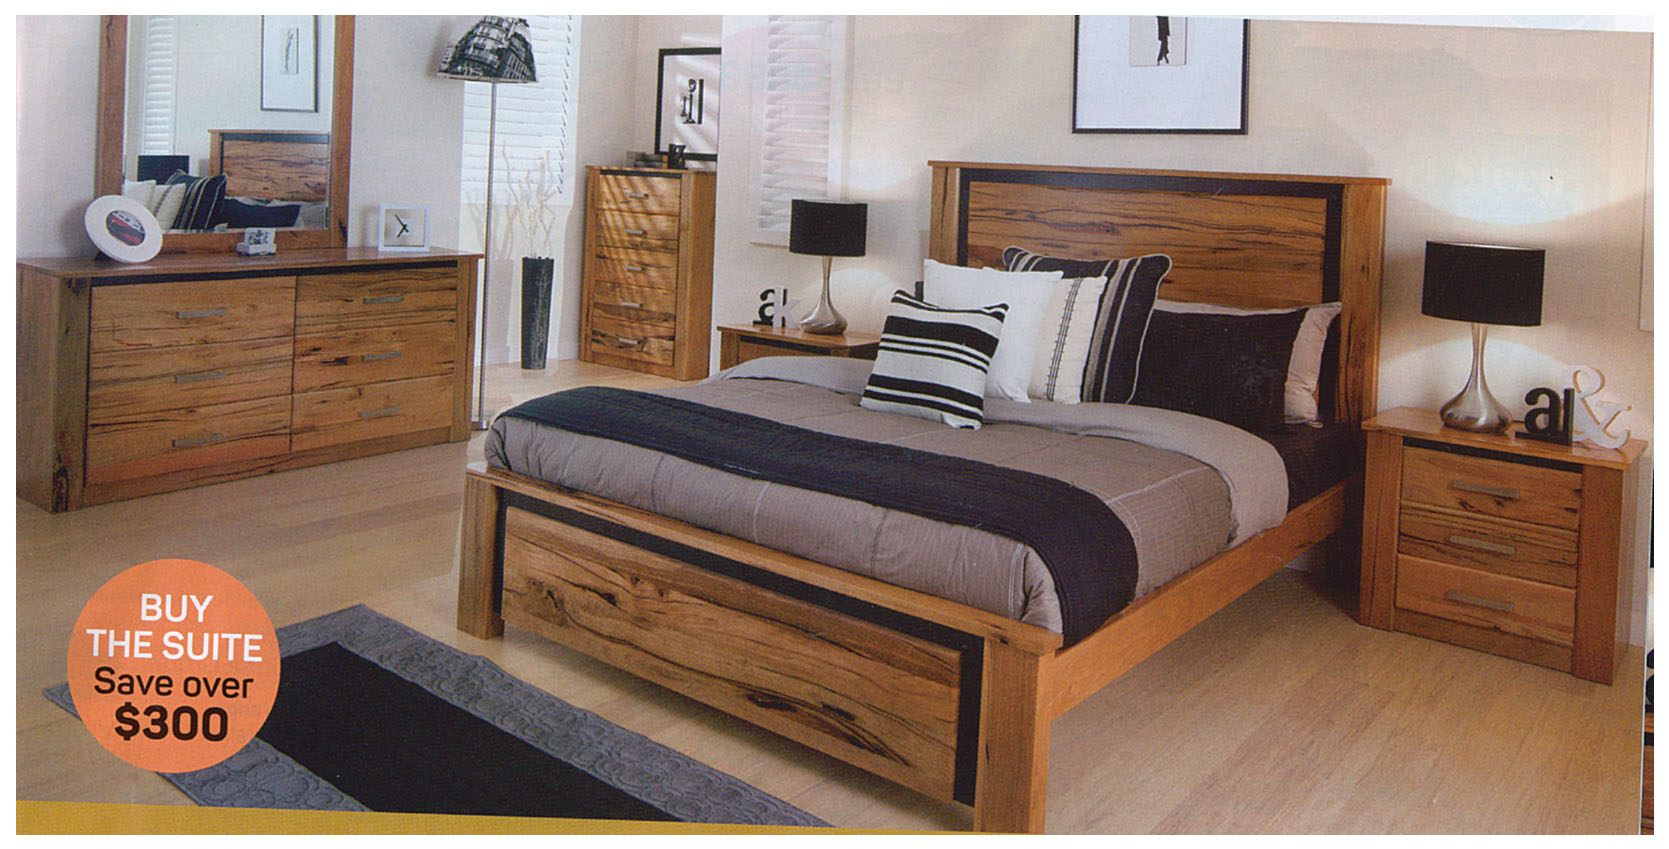 Marri Timber Collection Ausmart Online Melbourne